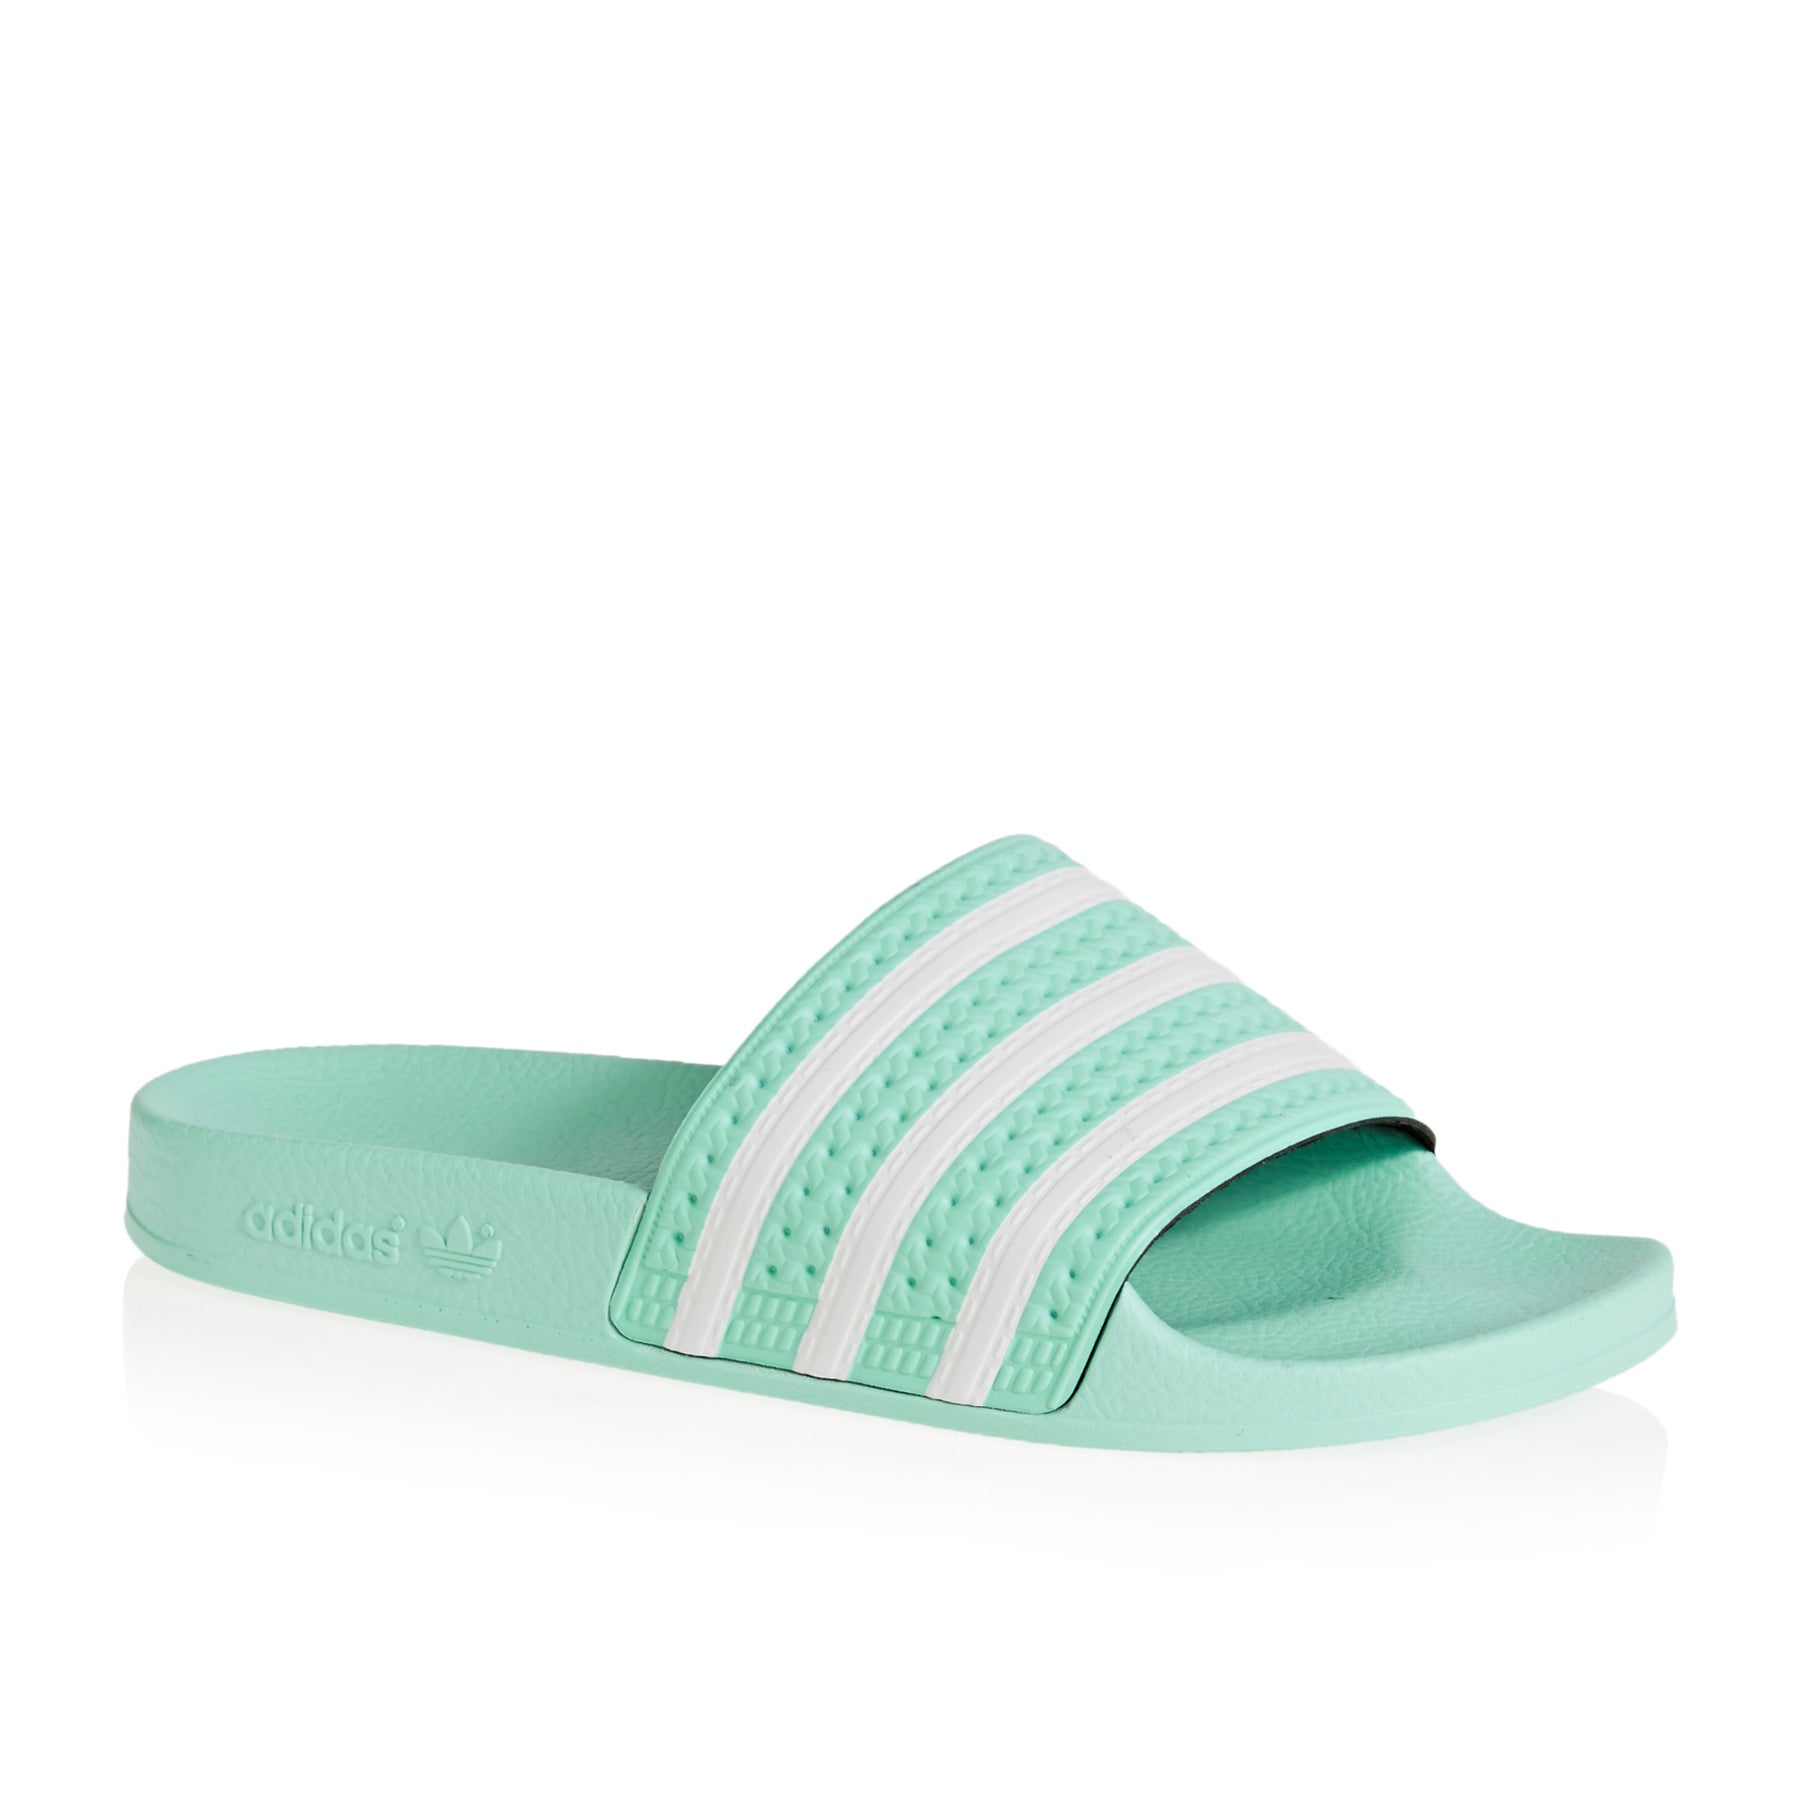 Surfdome Adidas Available Adilette Sandalias Mujer Originals From dCtrhQs